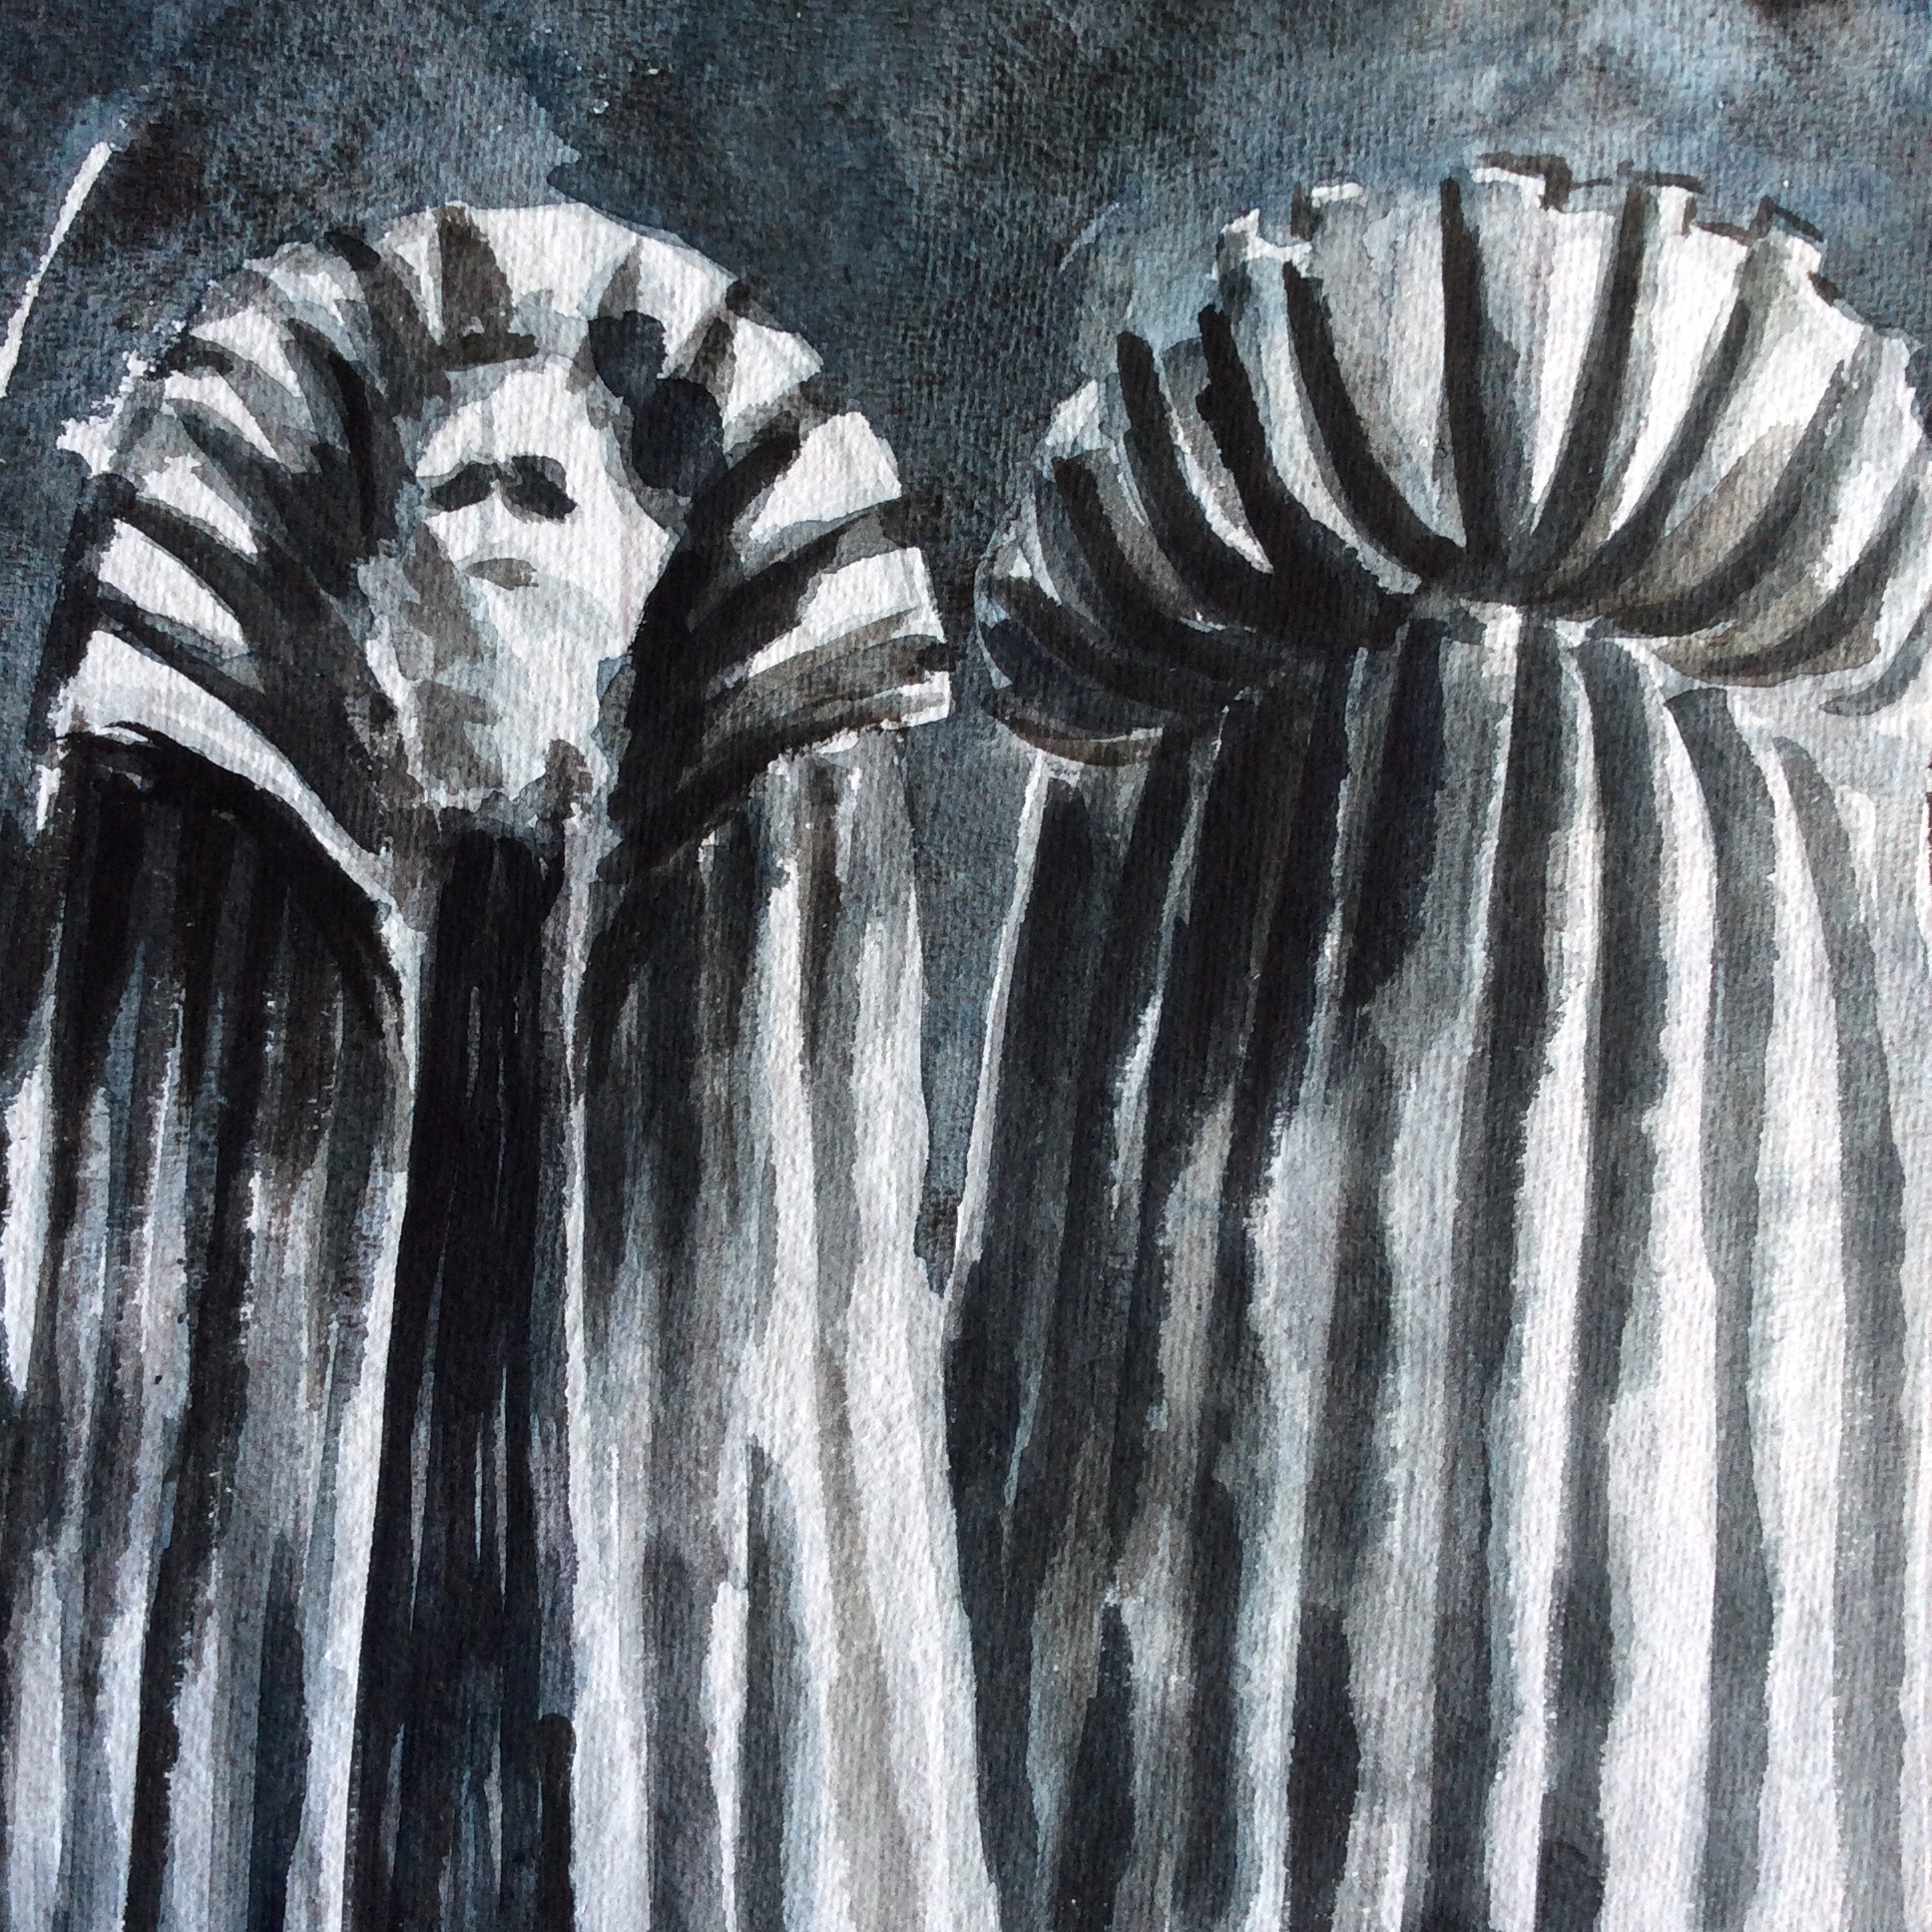 the tempest - W. SHAKESPEAREProsperowatercolor and china ink1999